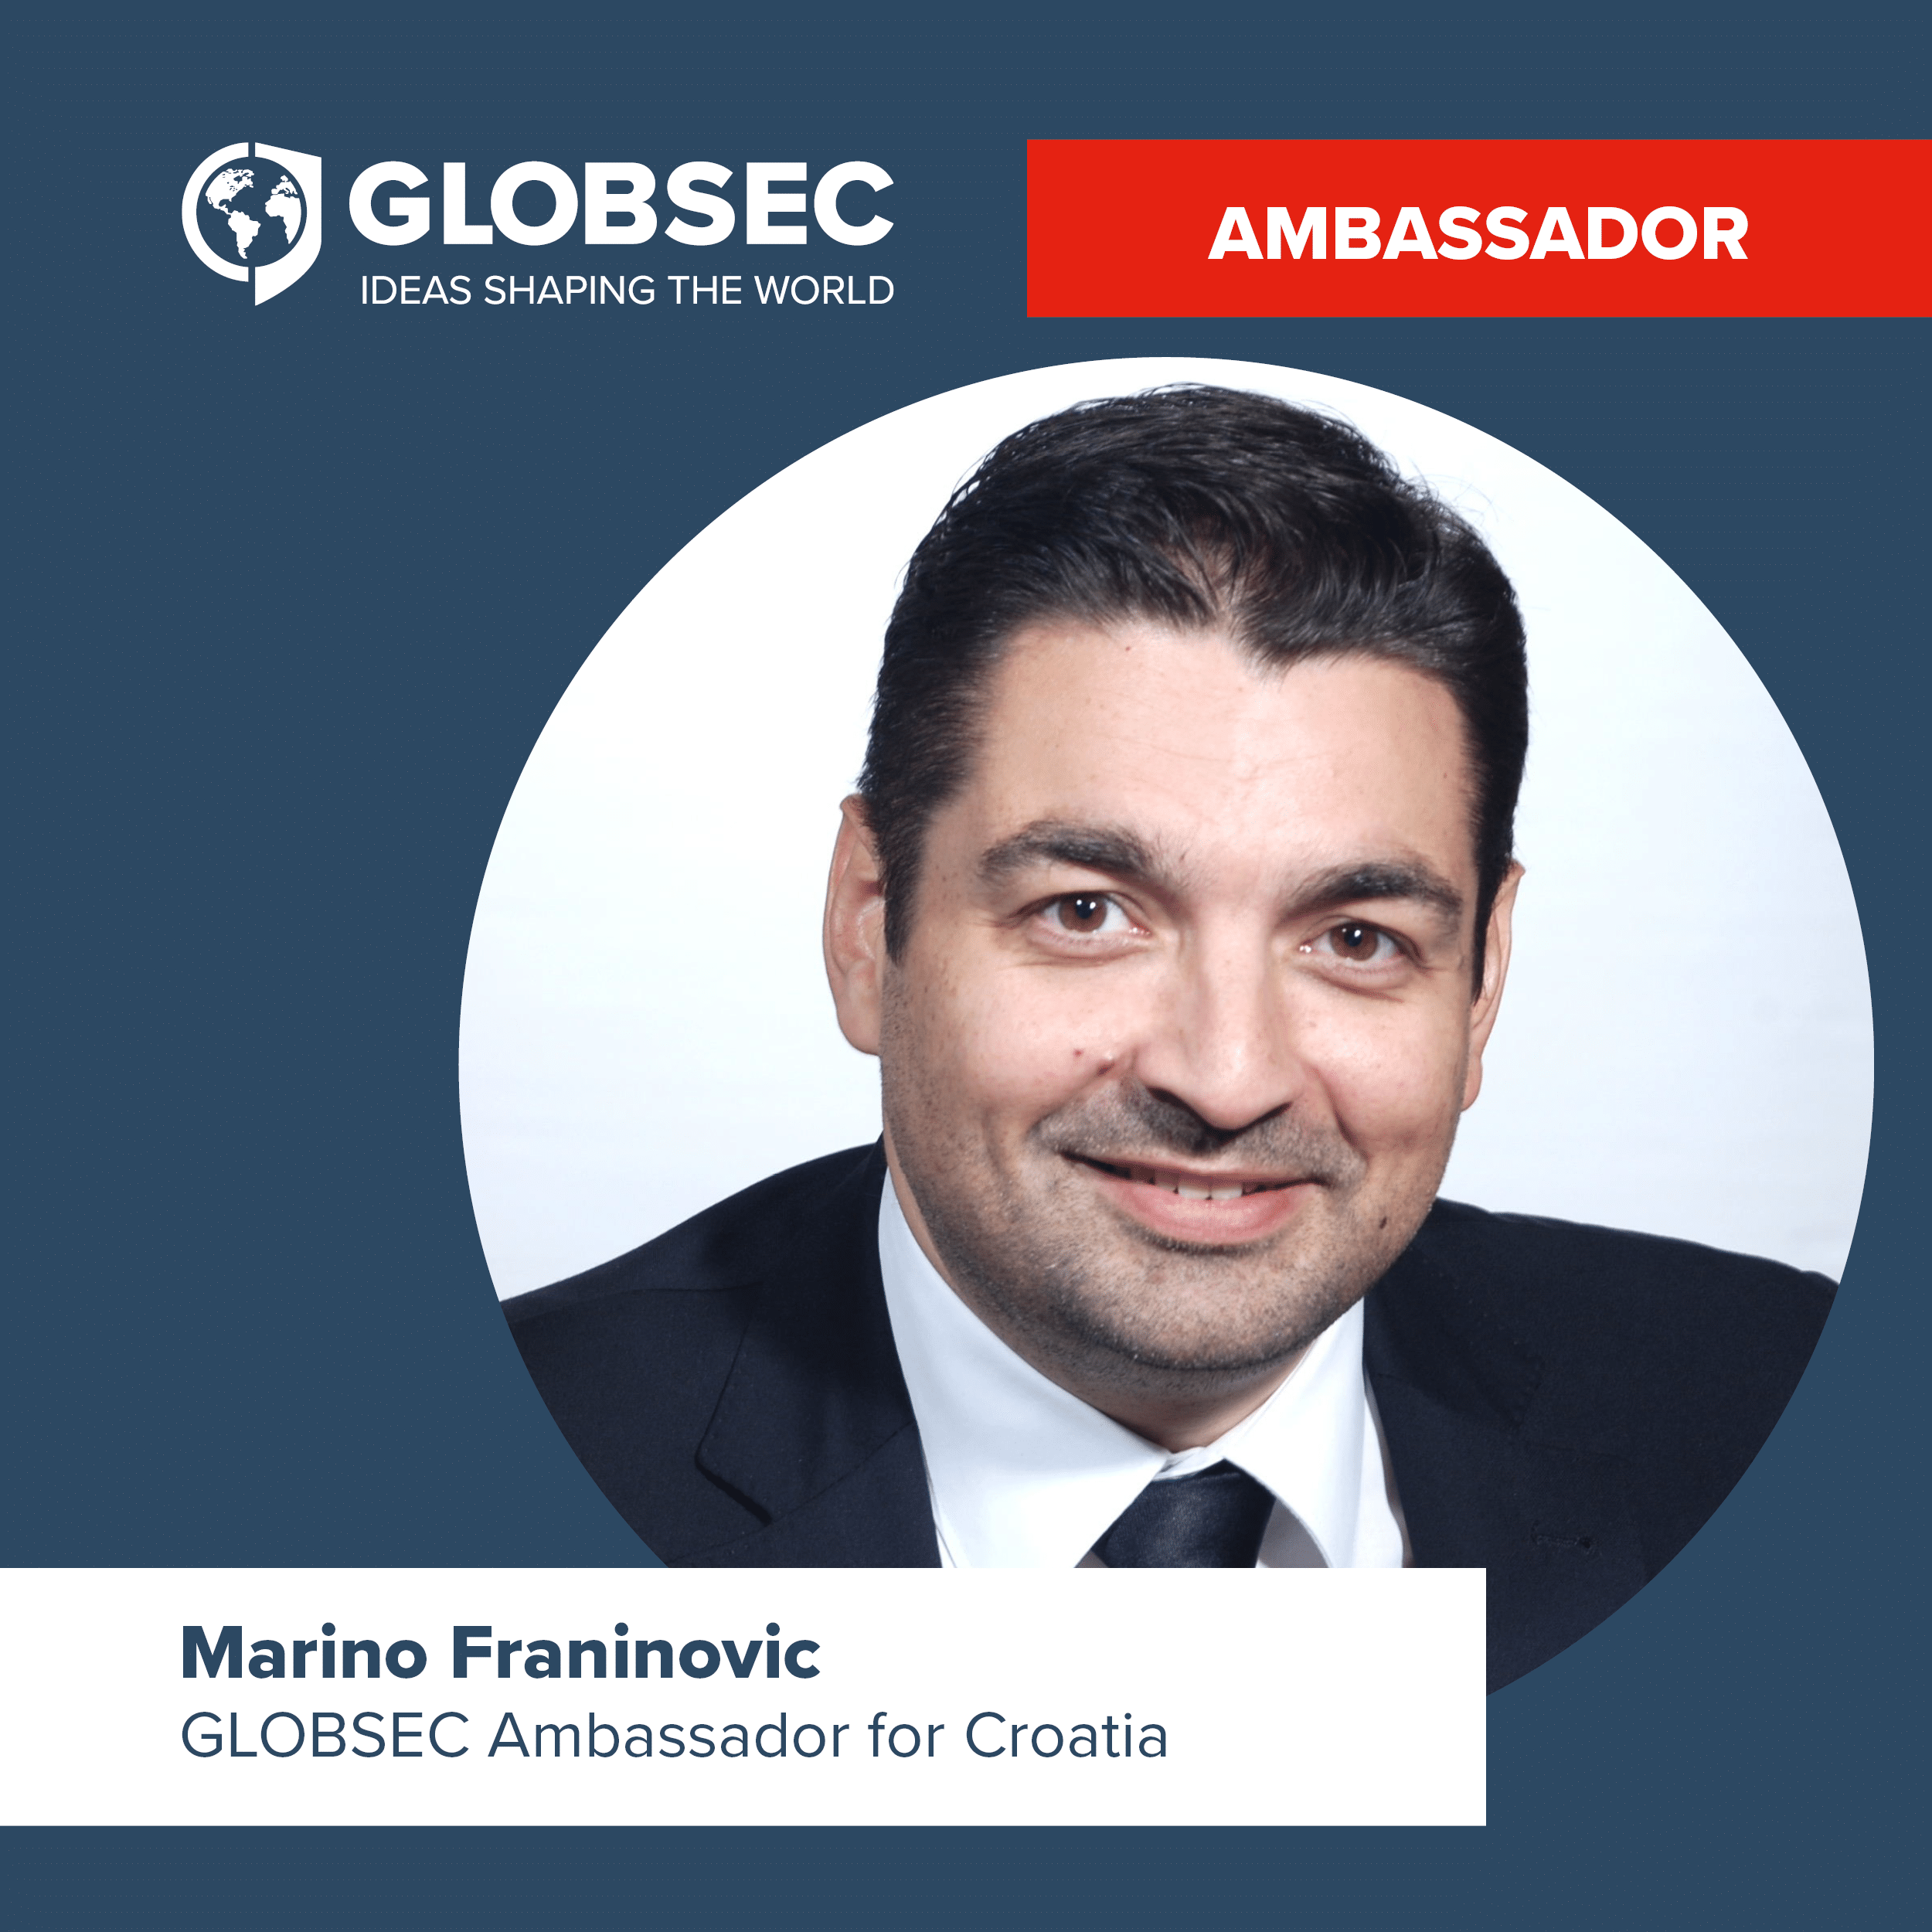 Marino Franinovic Becomes First European GLOBSEC Ambassador